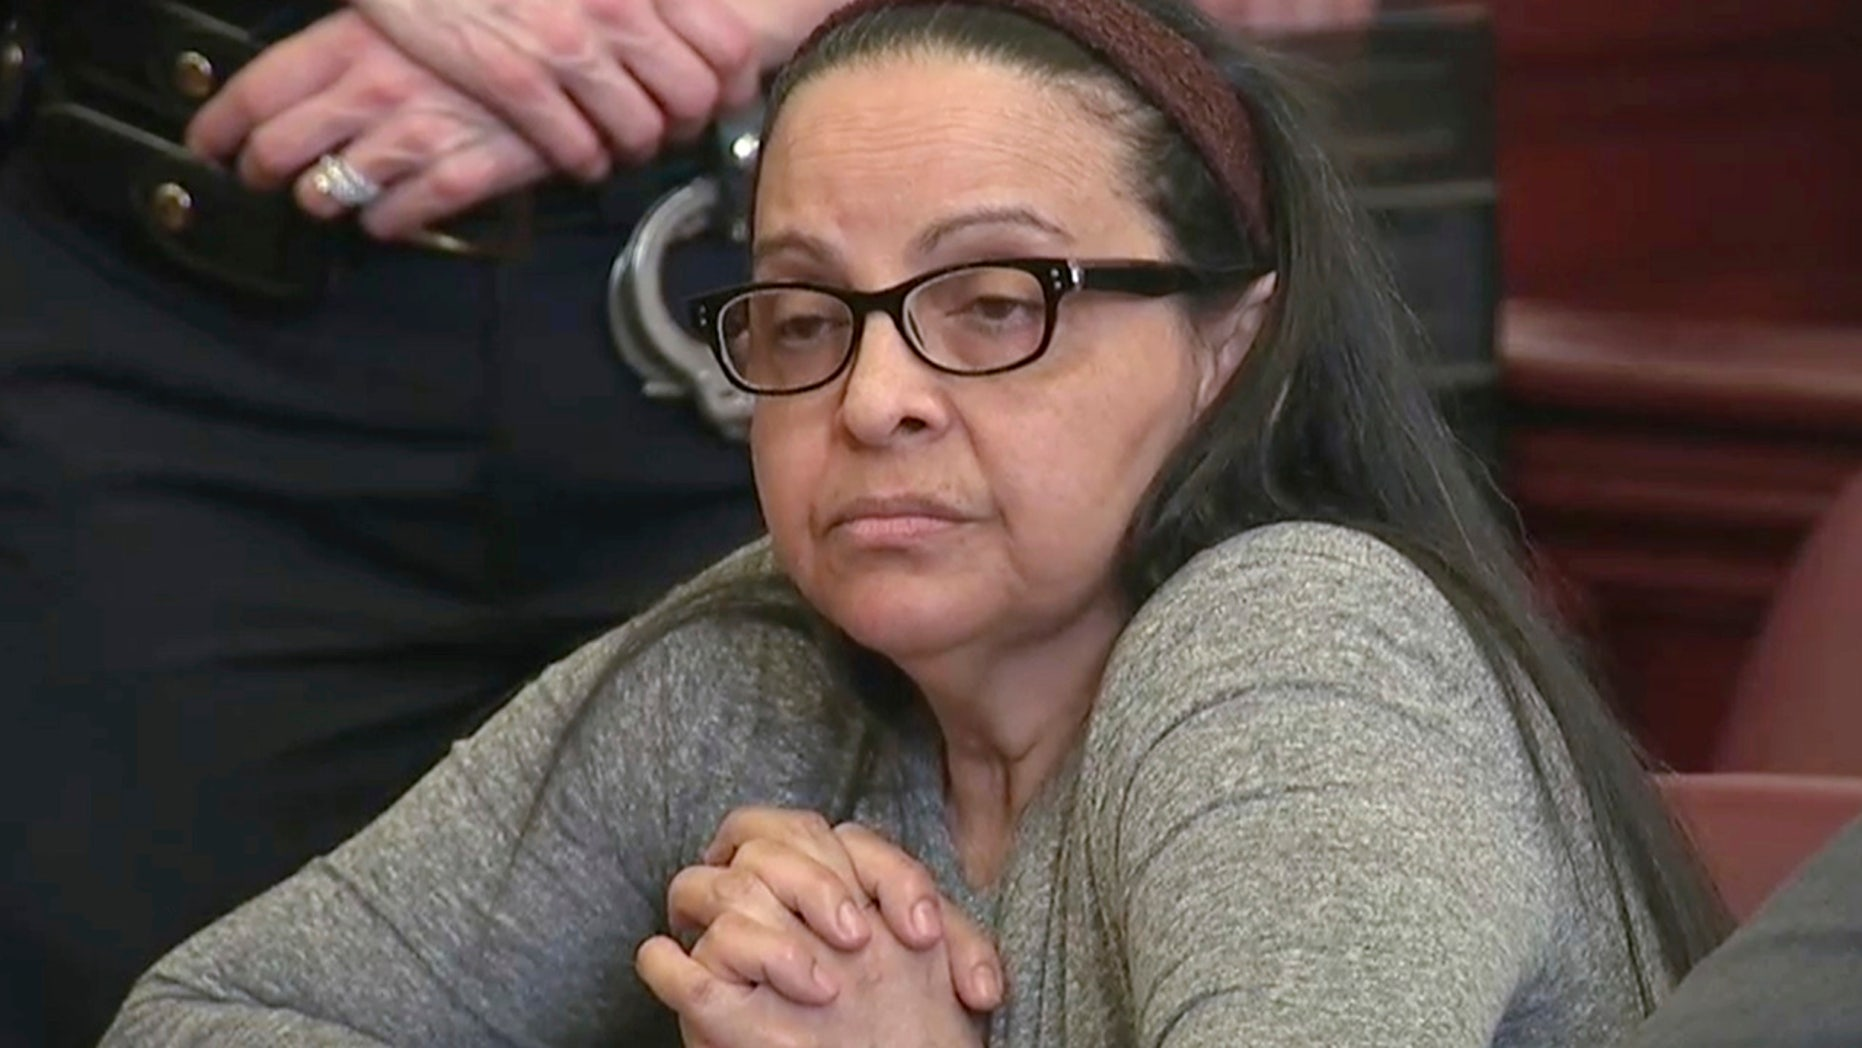 Yoselyn Ortega is seen during the first day of her trial in New York on March 1, 2018.